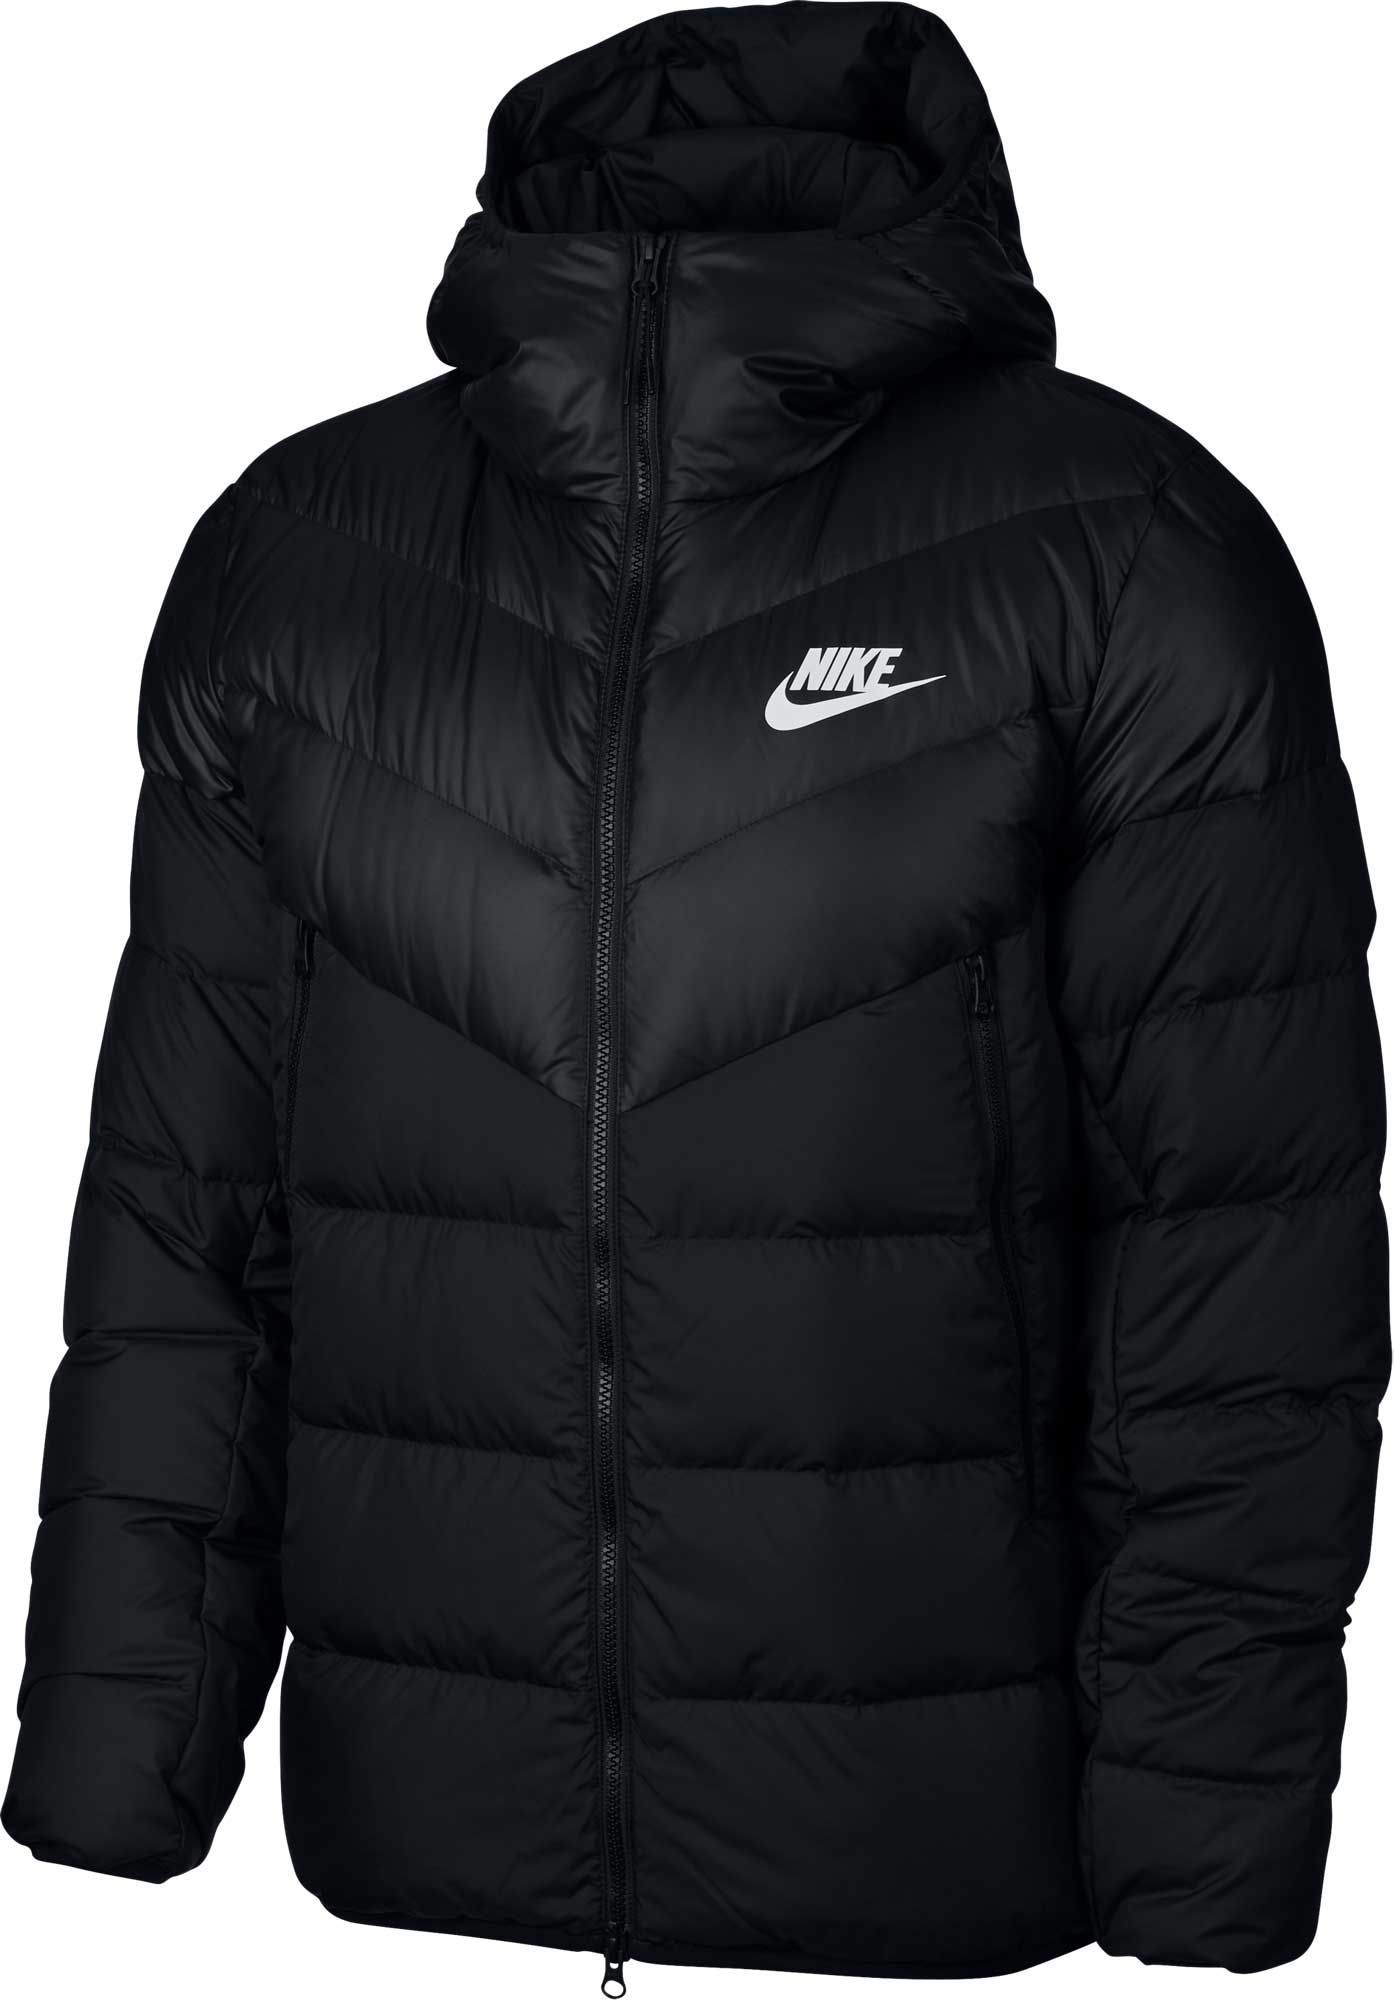 2b8aa5516 Nike Men's Sportswear Windrunner Down Jacket in 2019 | Products ...